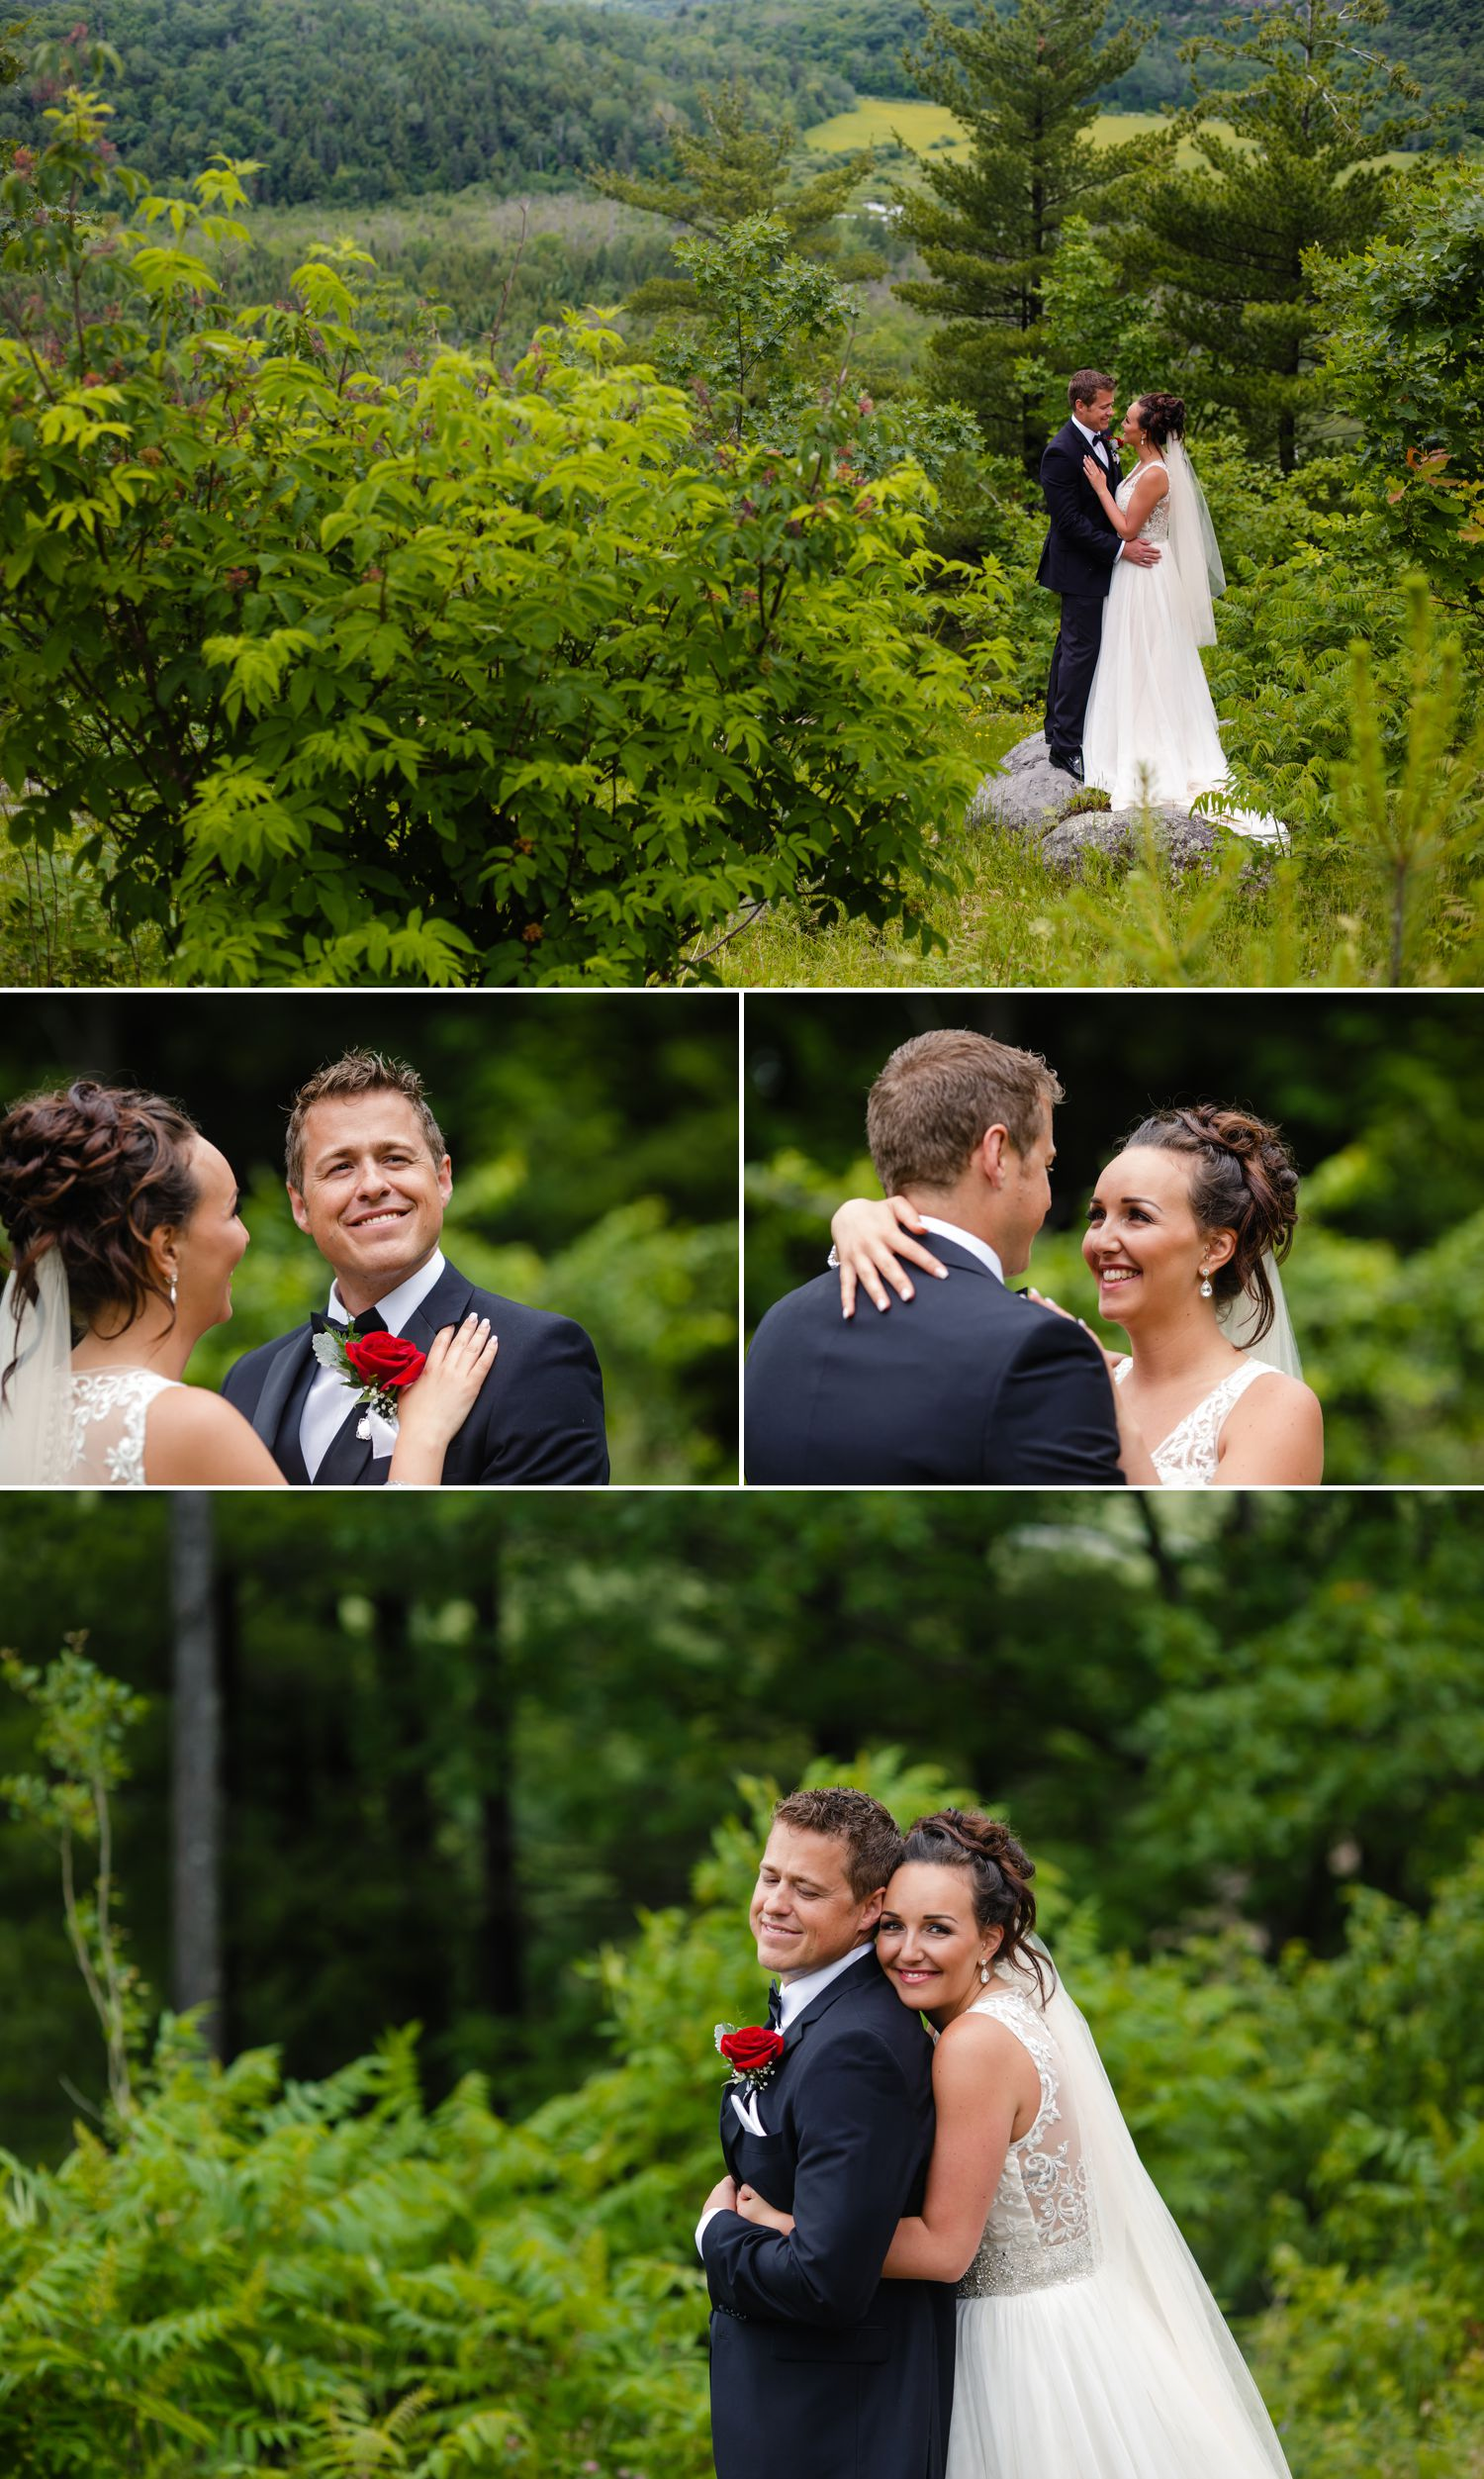 Couples portraits of the bride and groom at Le Belvedere